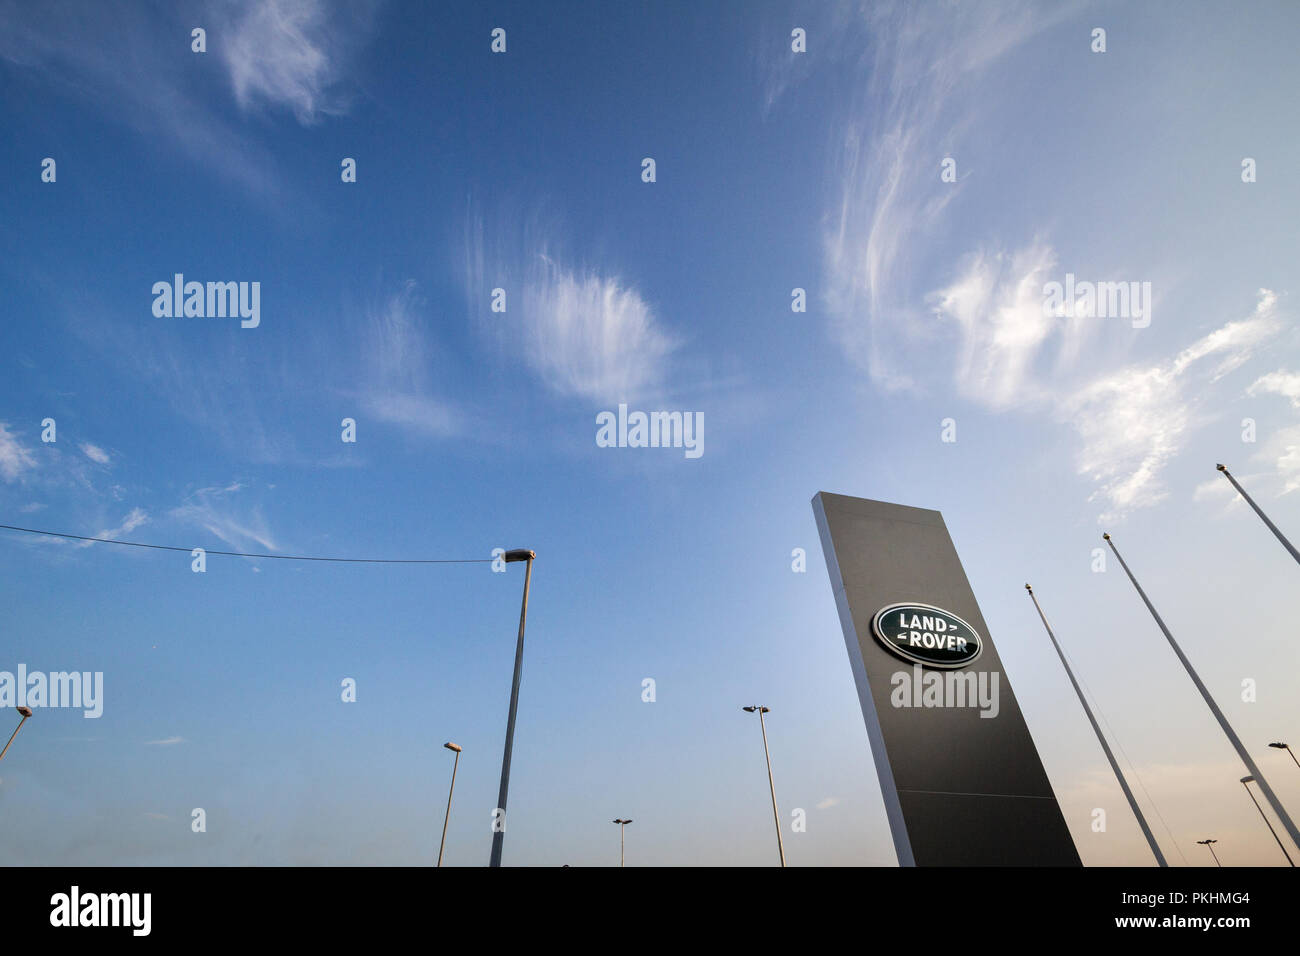 BELGRADE, SERBIA - SEPTEMBER 7, 2018: Land Rover logo on their main dealership store in Belgrade. Land Rover is a British car manufacturer, specialize - Stock Image